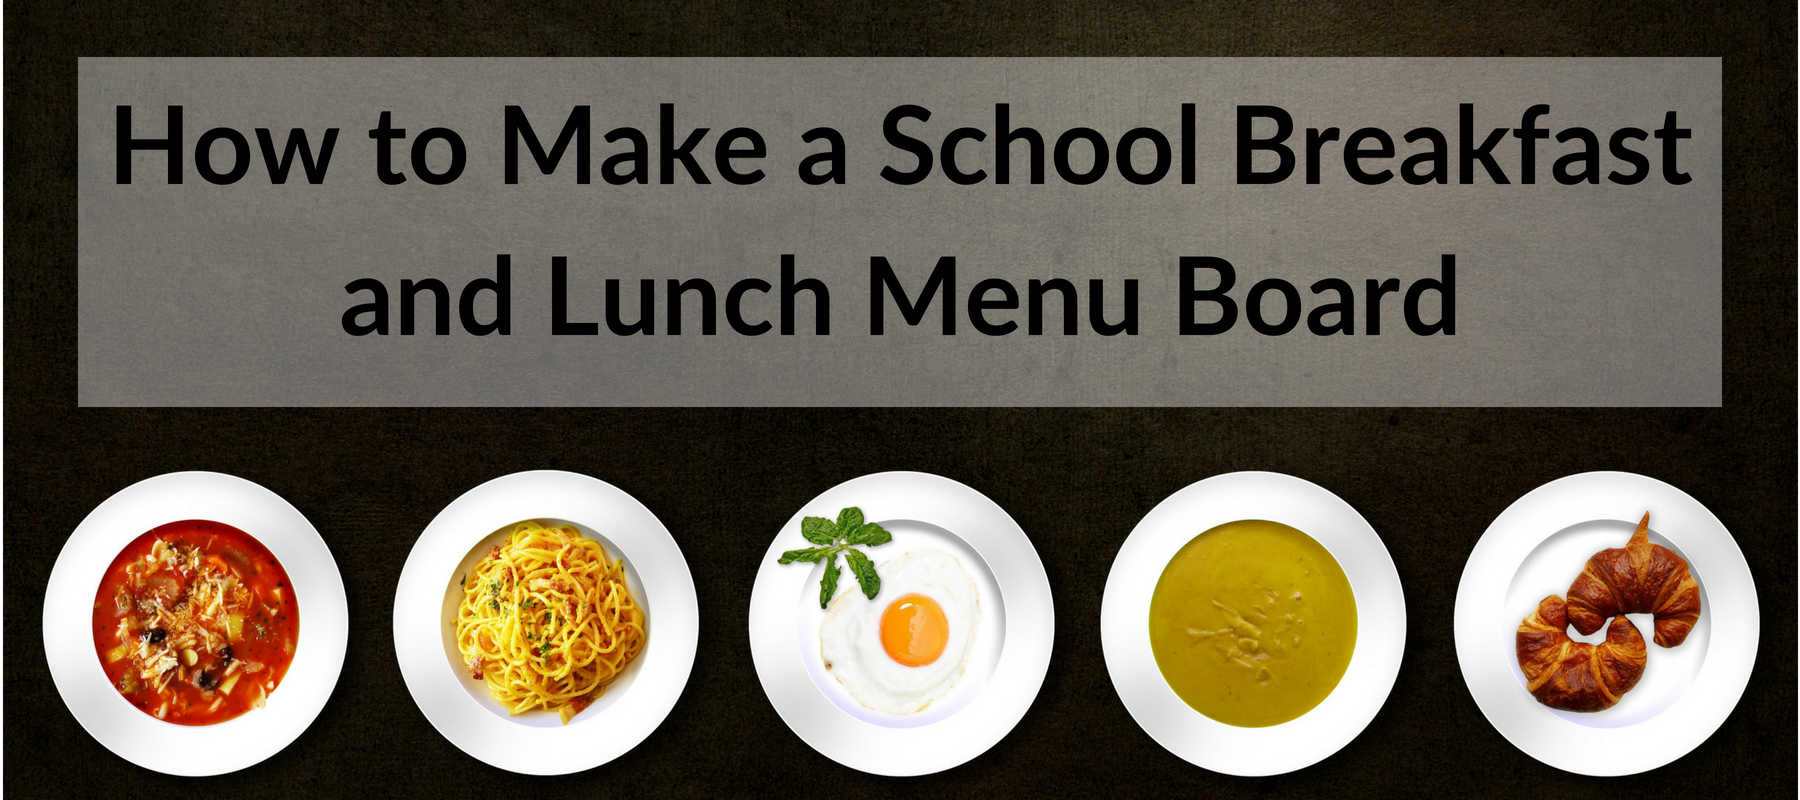 How to Make a School Breakfast and Lunch Menu Board